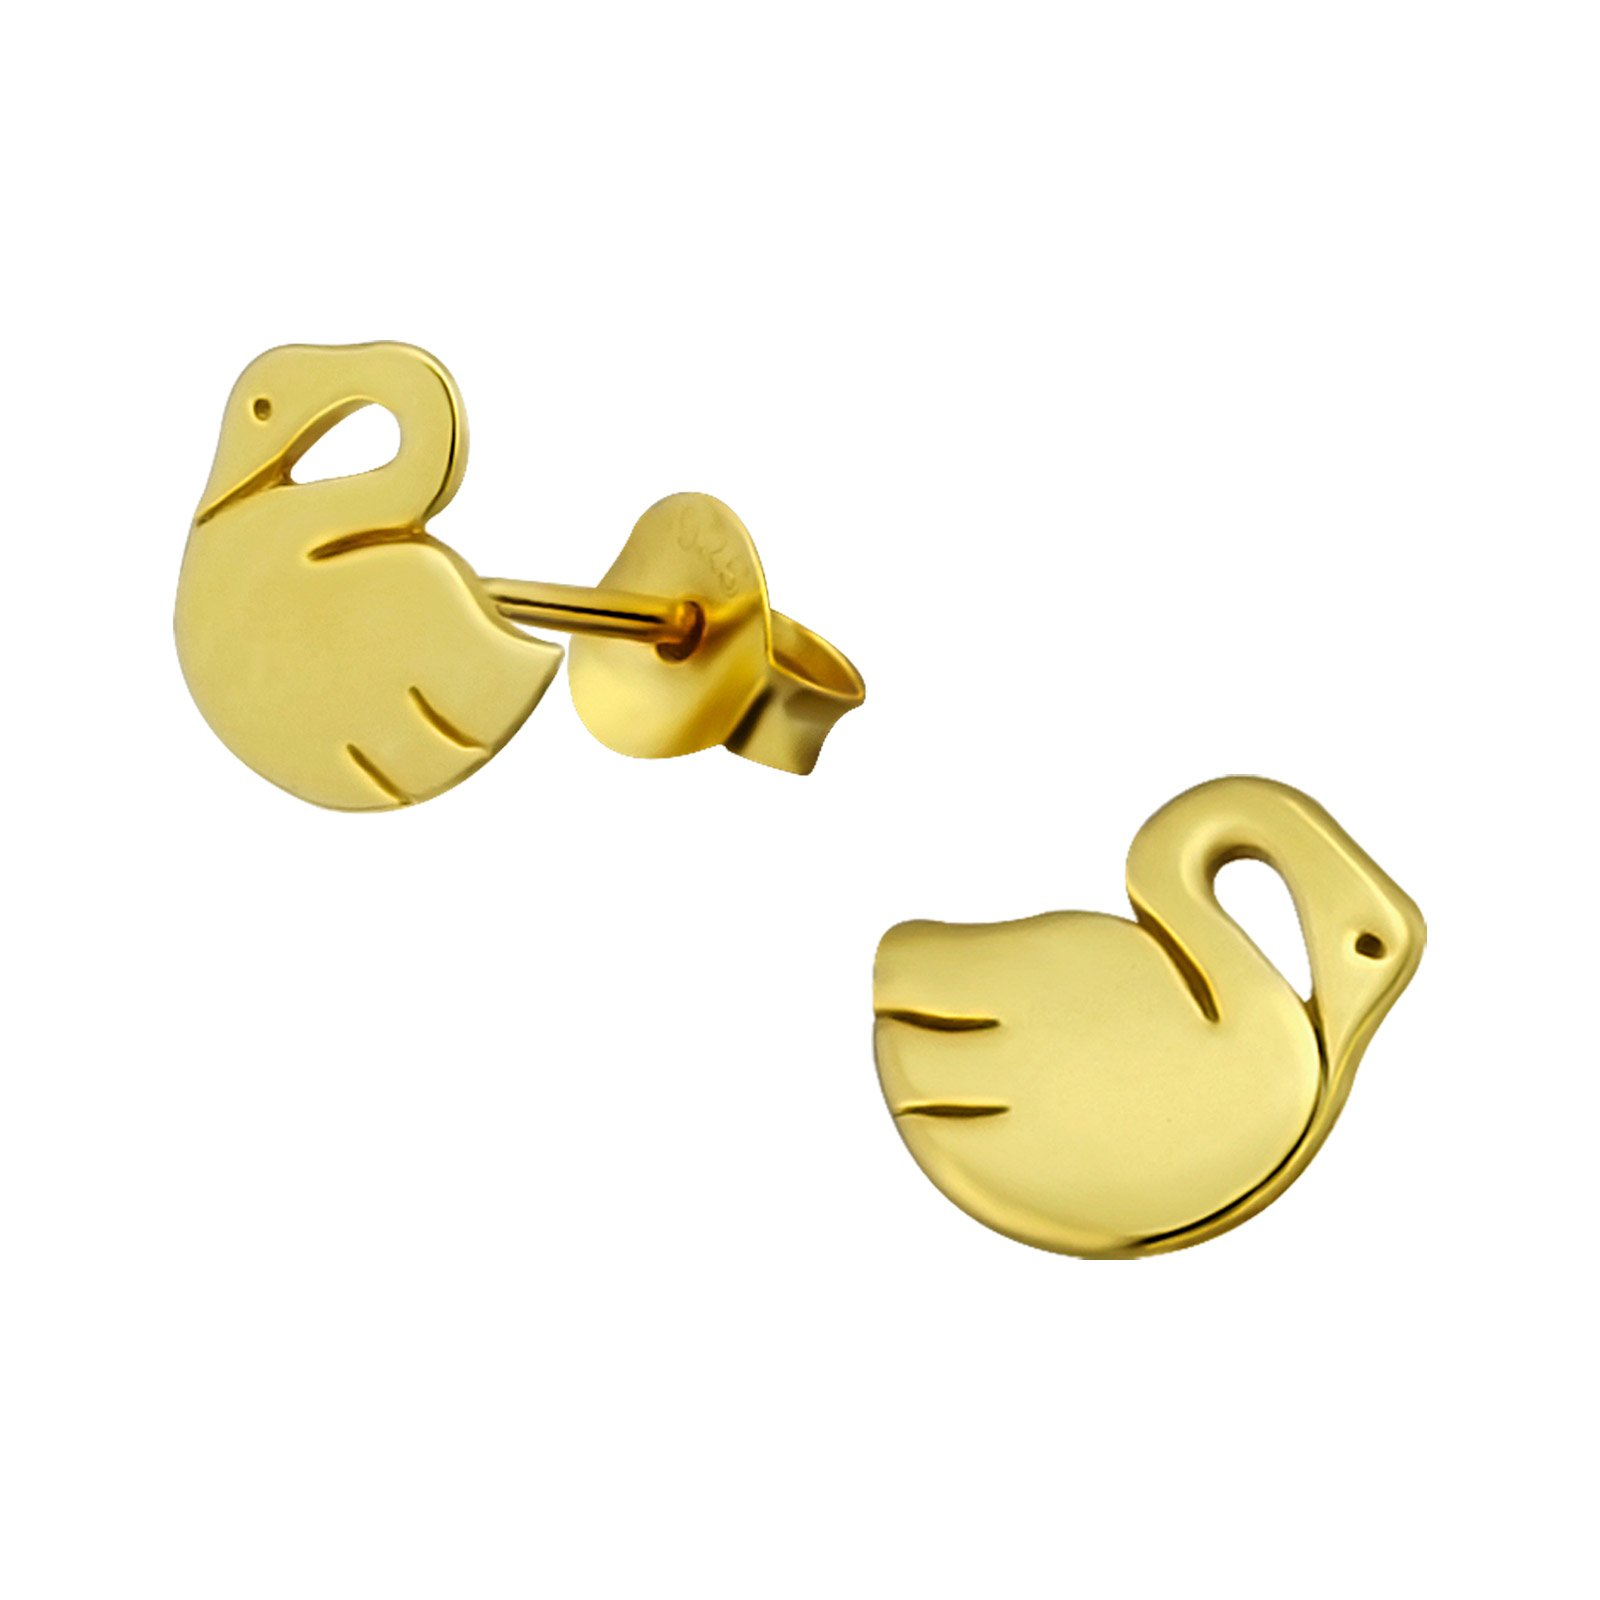 Hypoallergenic Gold Plated Swan Stud Earrings for Girls (Nickel Free and Safe for Sensitive Ears)